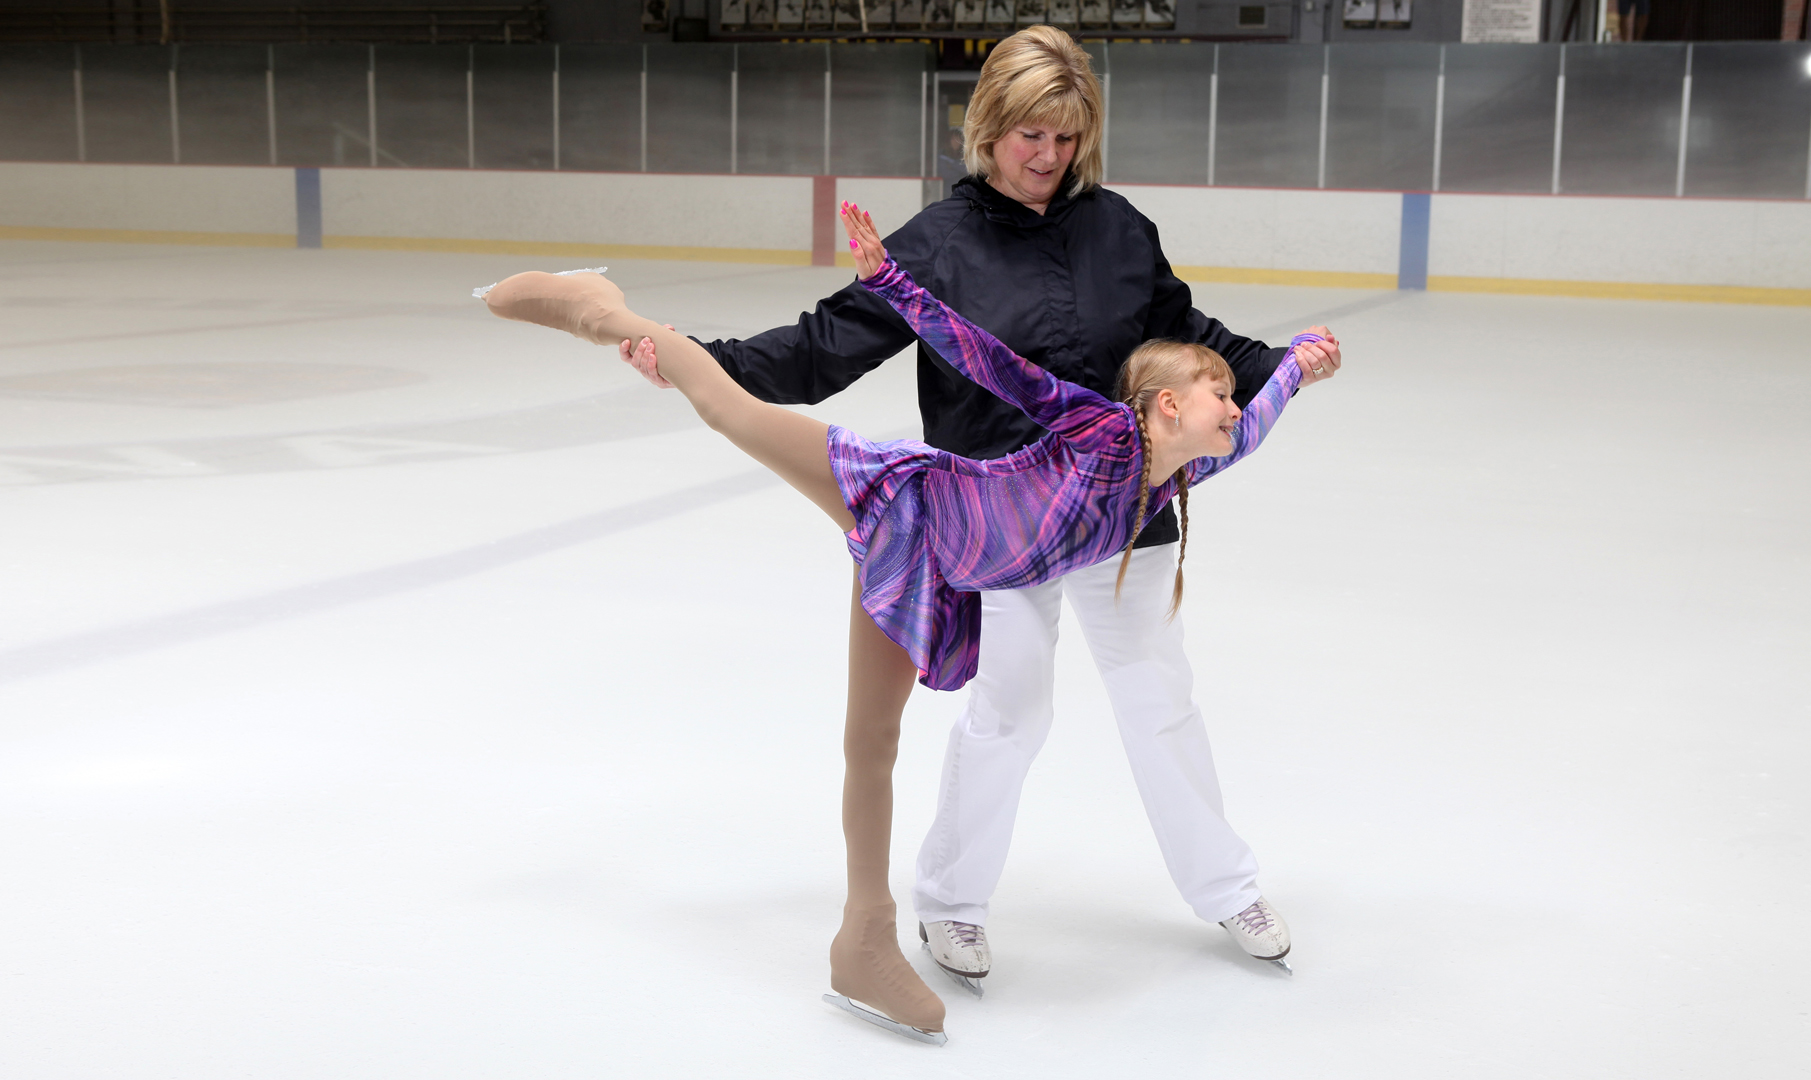 A coach helps a young skater.